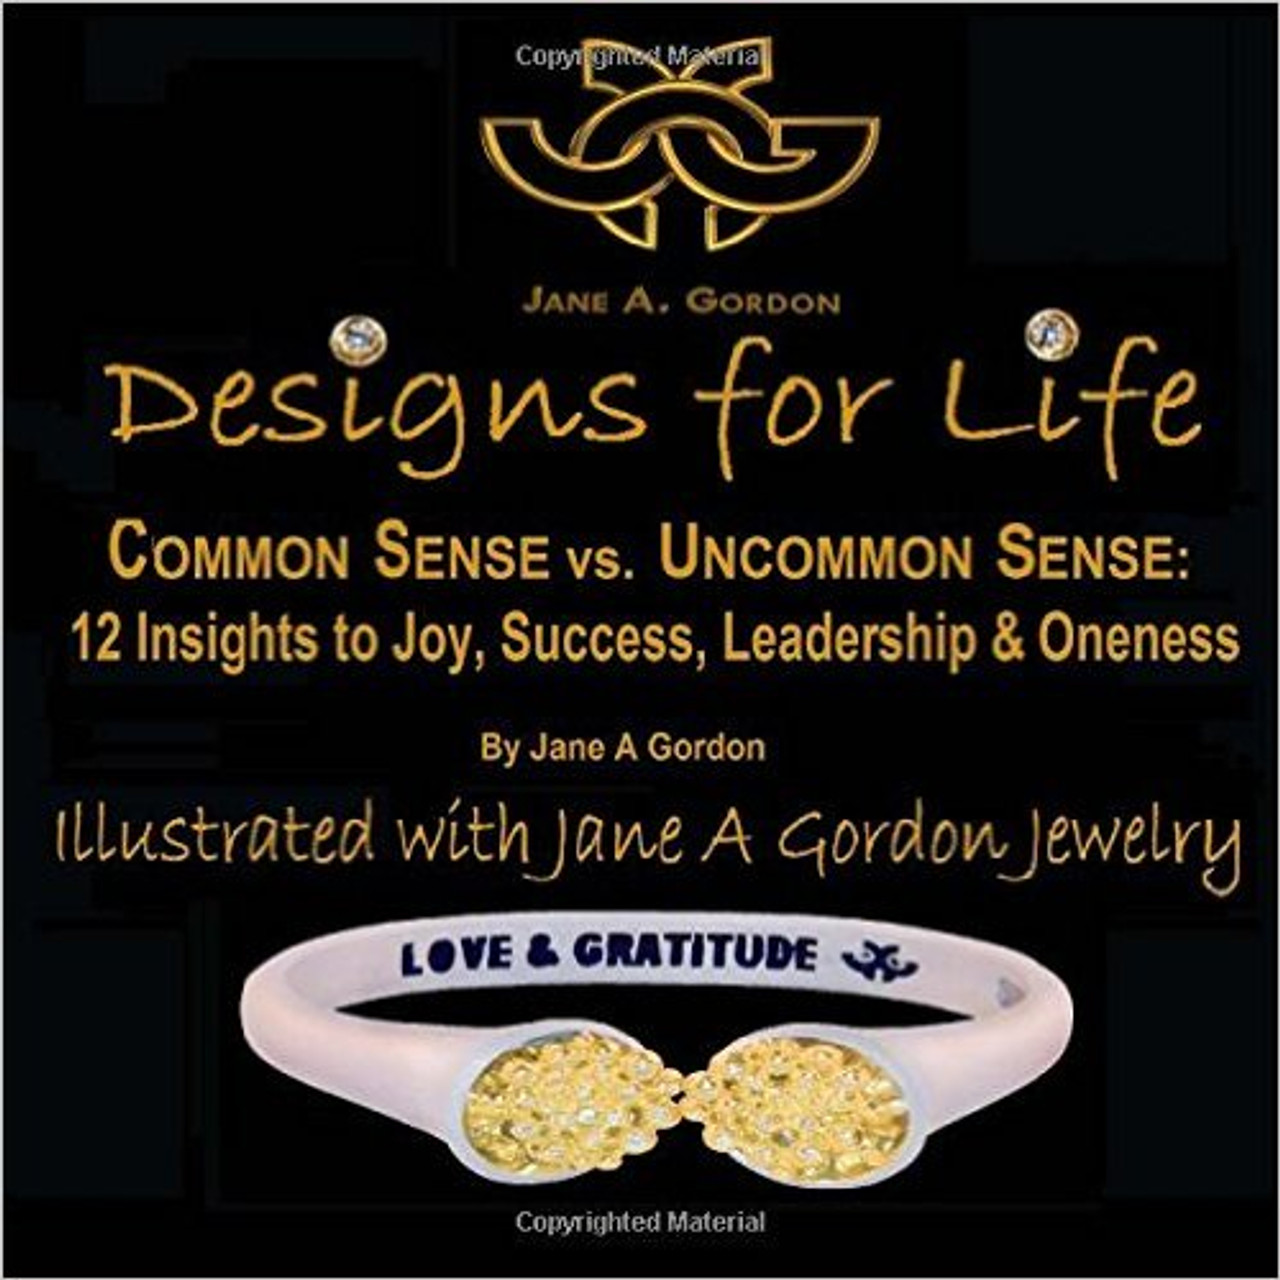 Designs for Life.  A Step by Step Guide to Happiness.  Signed Book